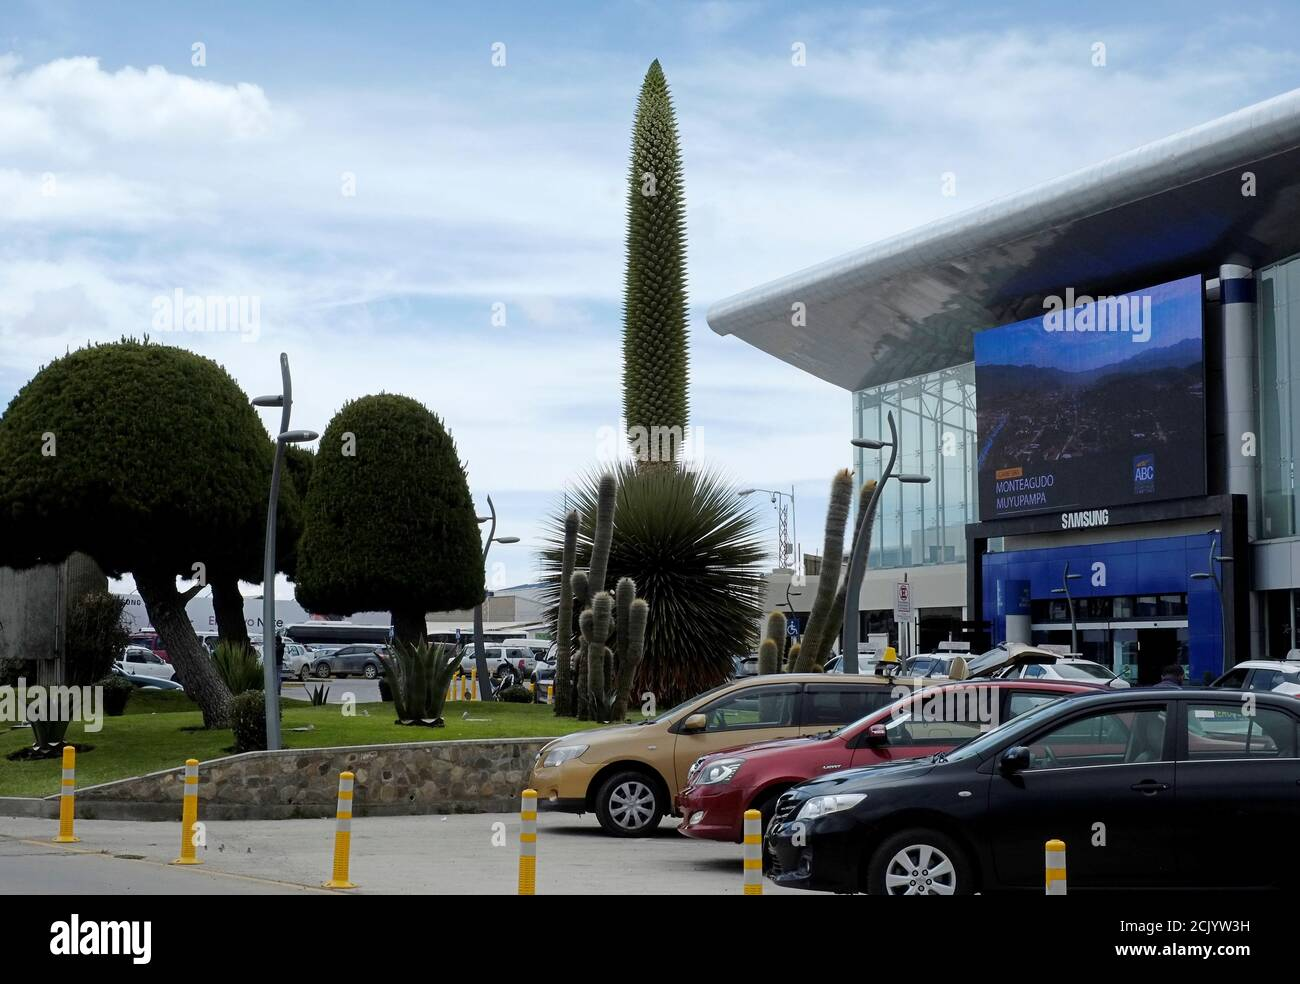 A view of a Queen of the Andes (Puya raimondii) plant as it begins to bloom, outside of El Alto international airport, on the outskirts of La Paz, Bolivia, November 16, 2018. This plant only blooms when the plant reaches an age of about 80 to 150 years old. Picture taken November 16, 2018. REUTERS/David Mercado Stock Photo